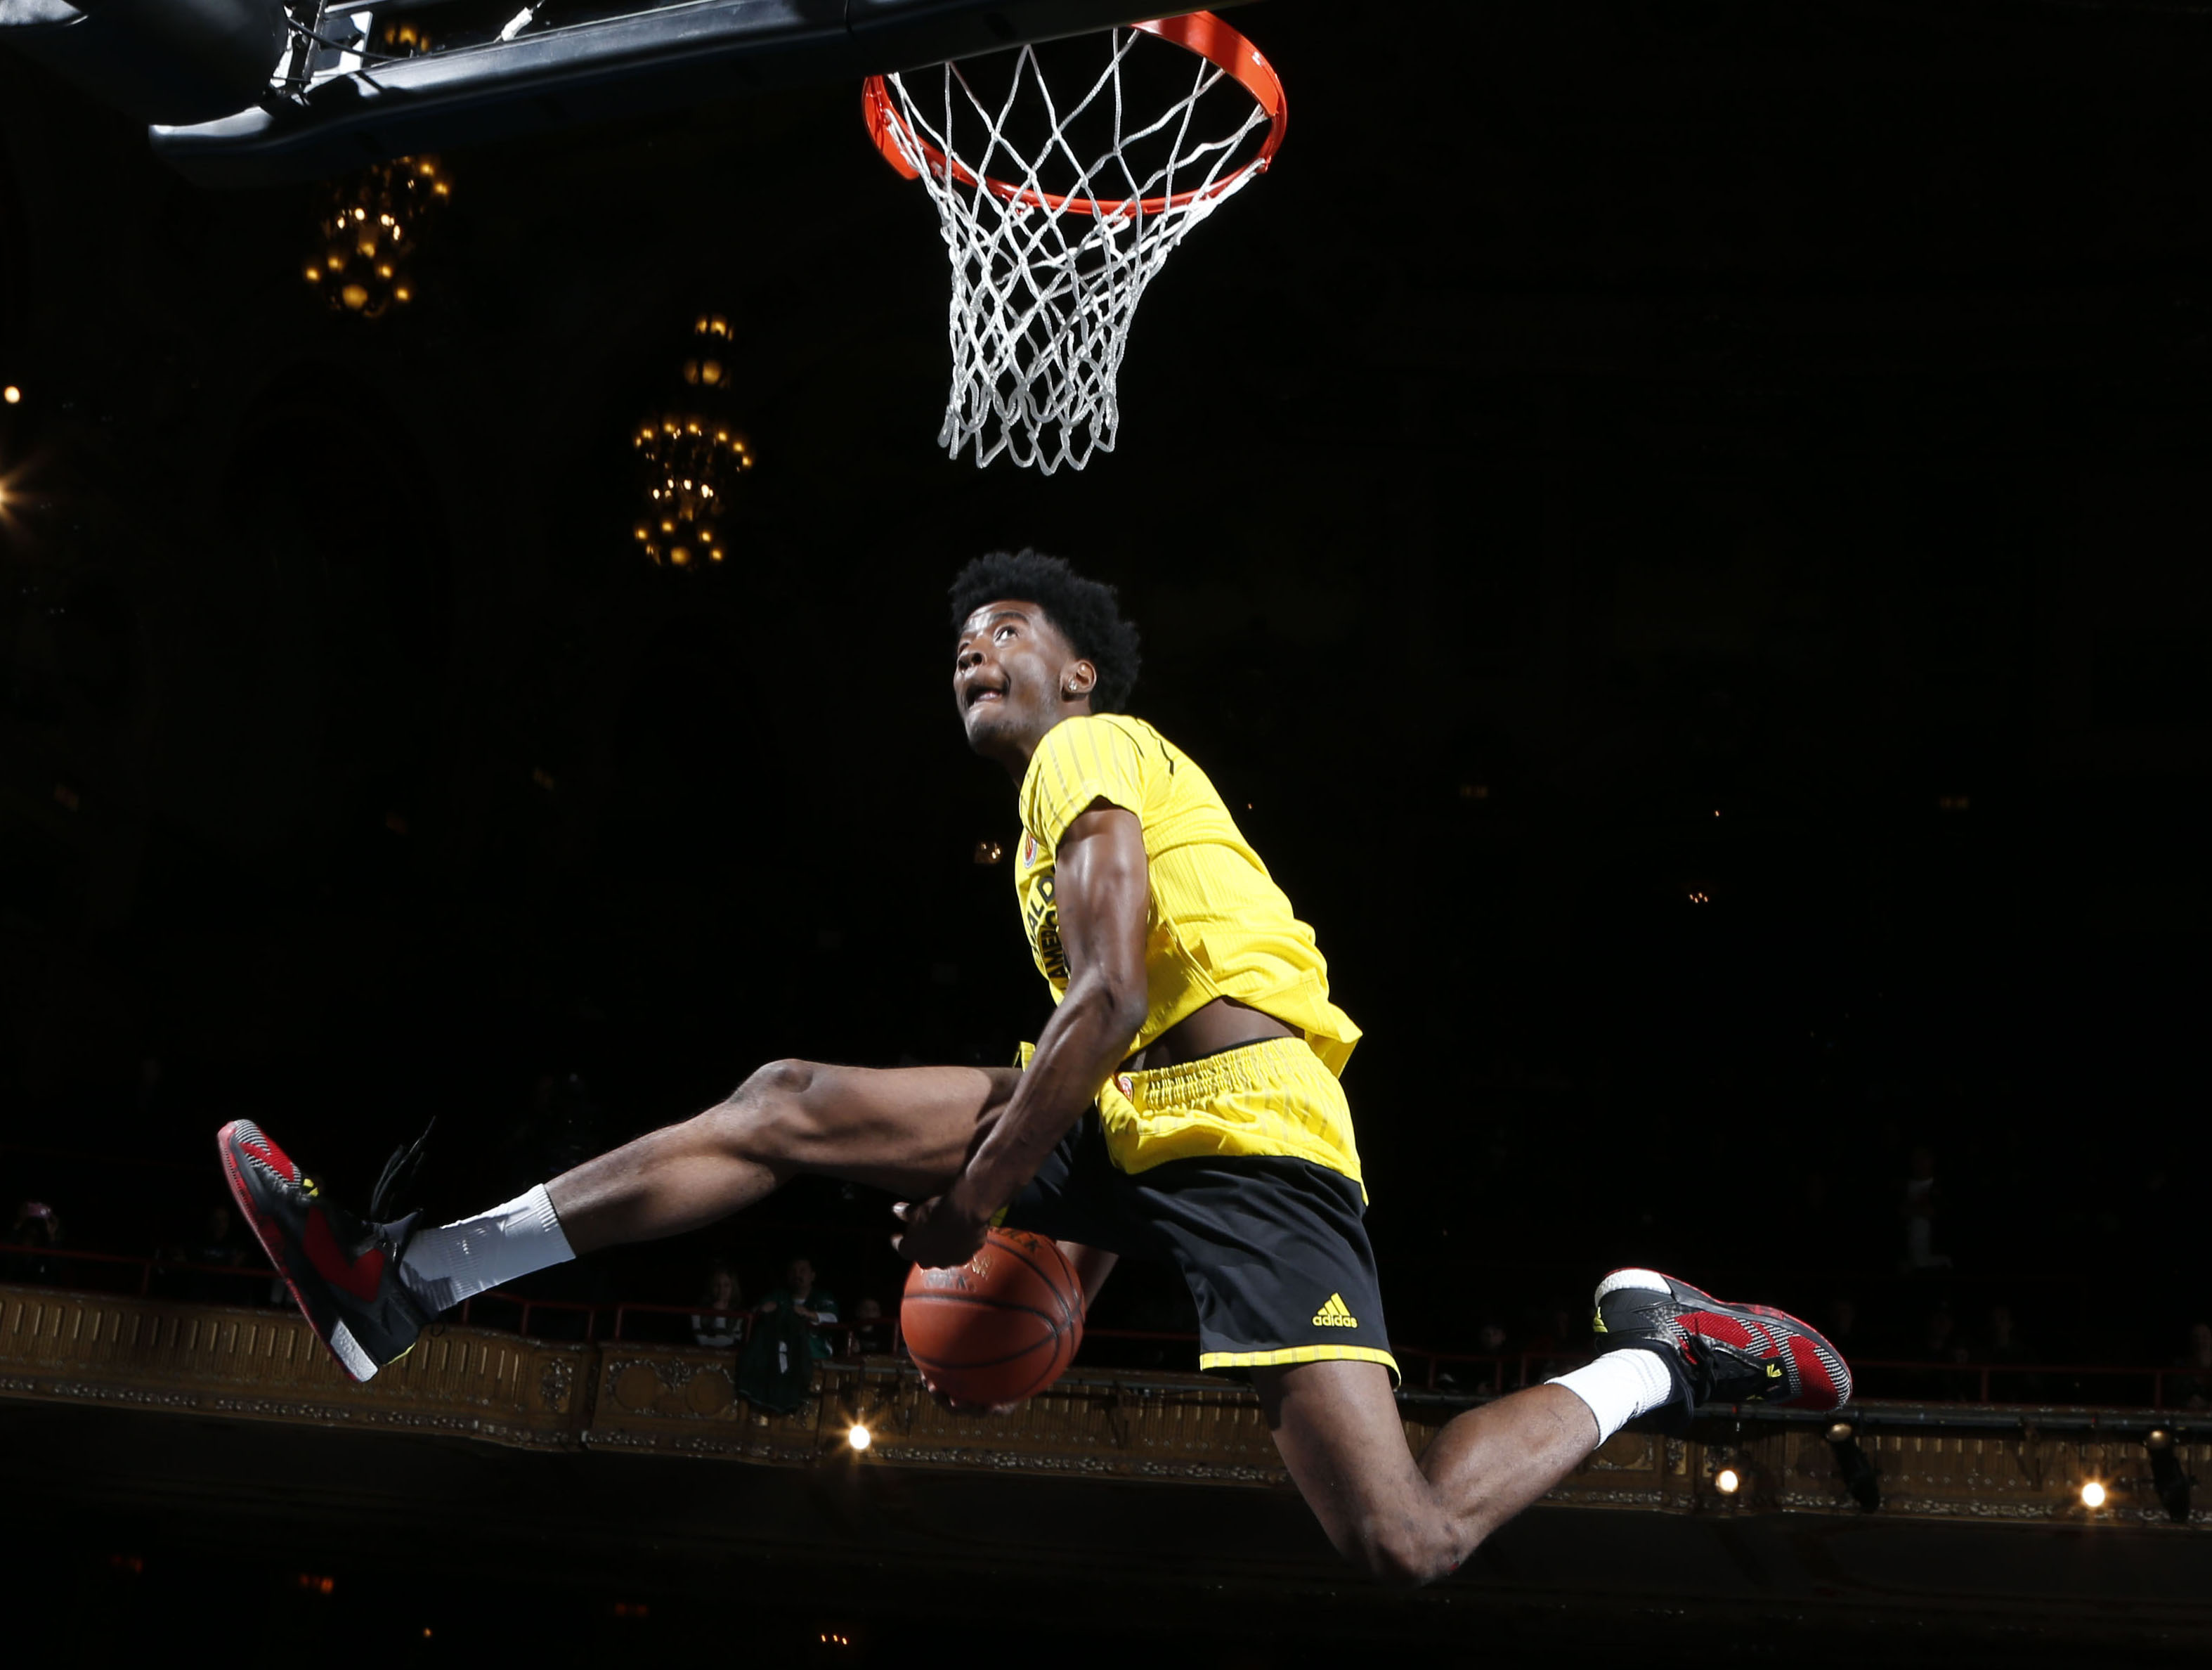 Josh Jackson dunks during thePowerade Jamfest at the Chicago Theatre Monday. (Brian Spurlock-USA TODAY Sports)